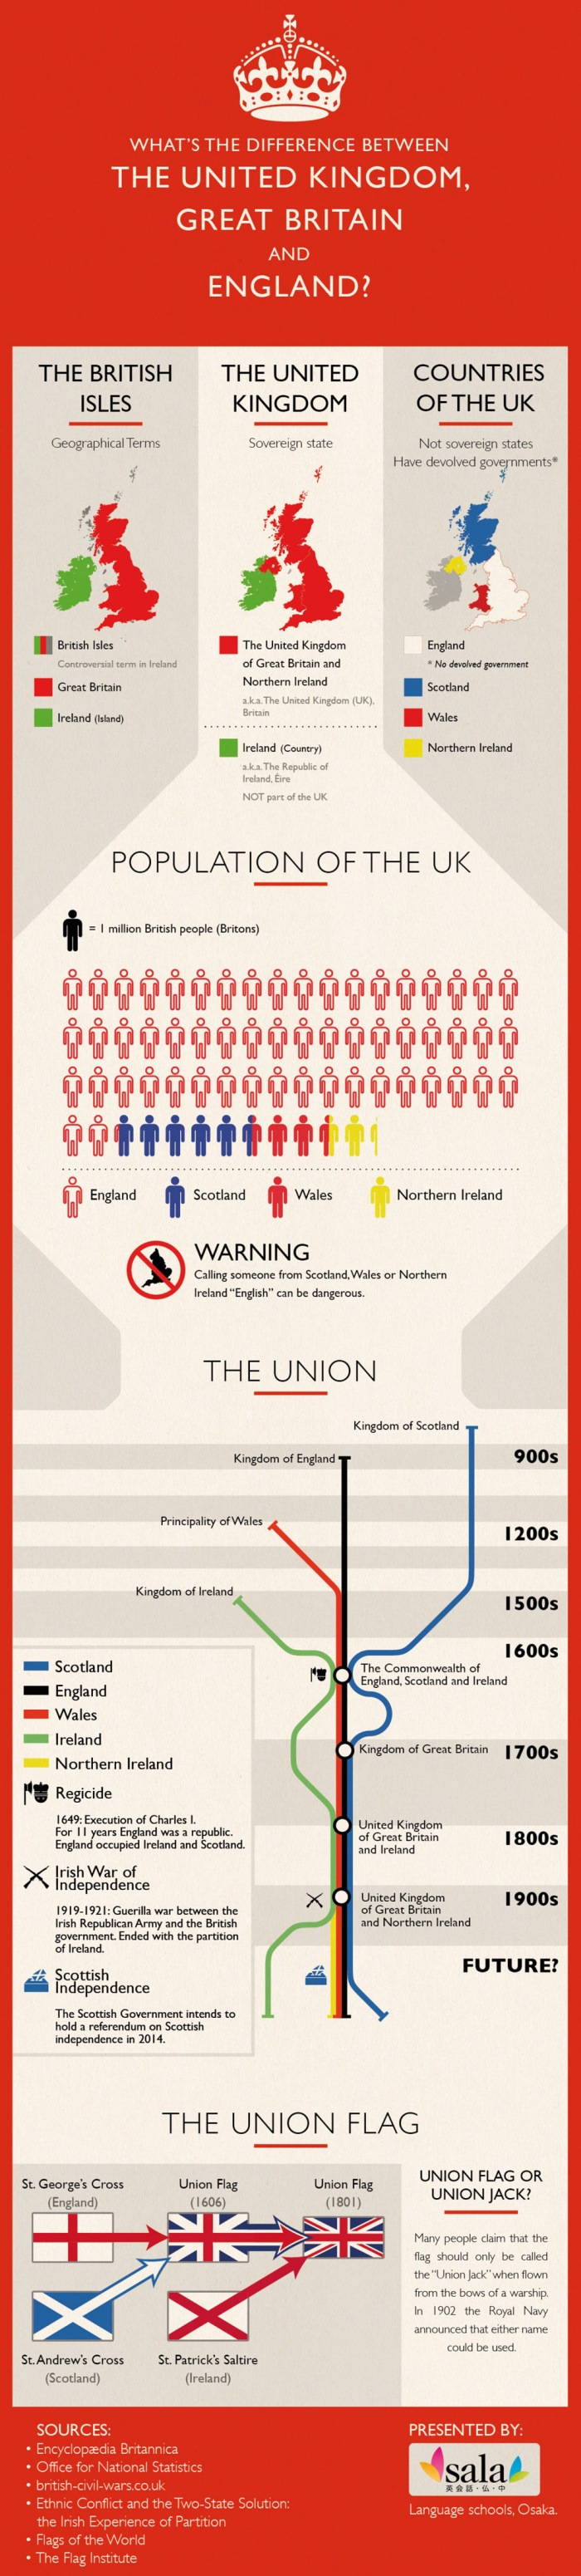 the-difference-between-the-united-kingdom-great-britain-and-england